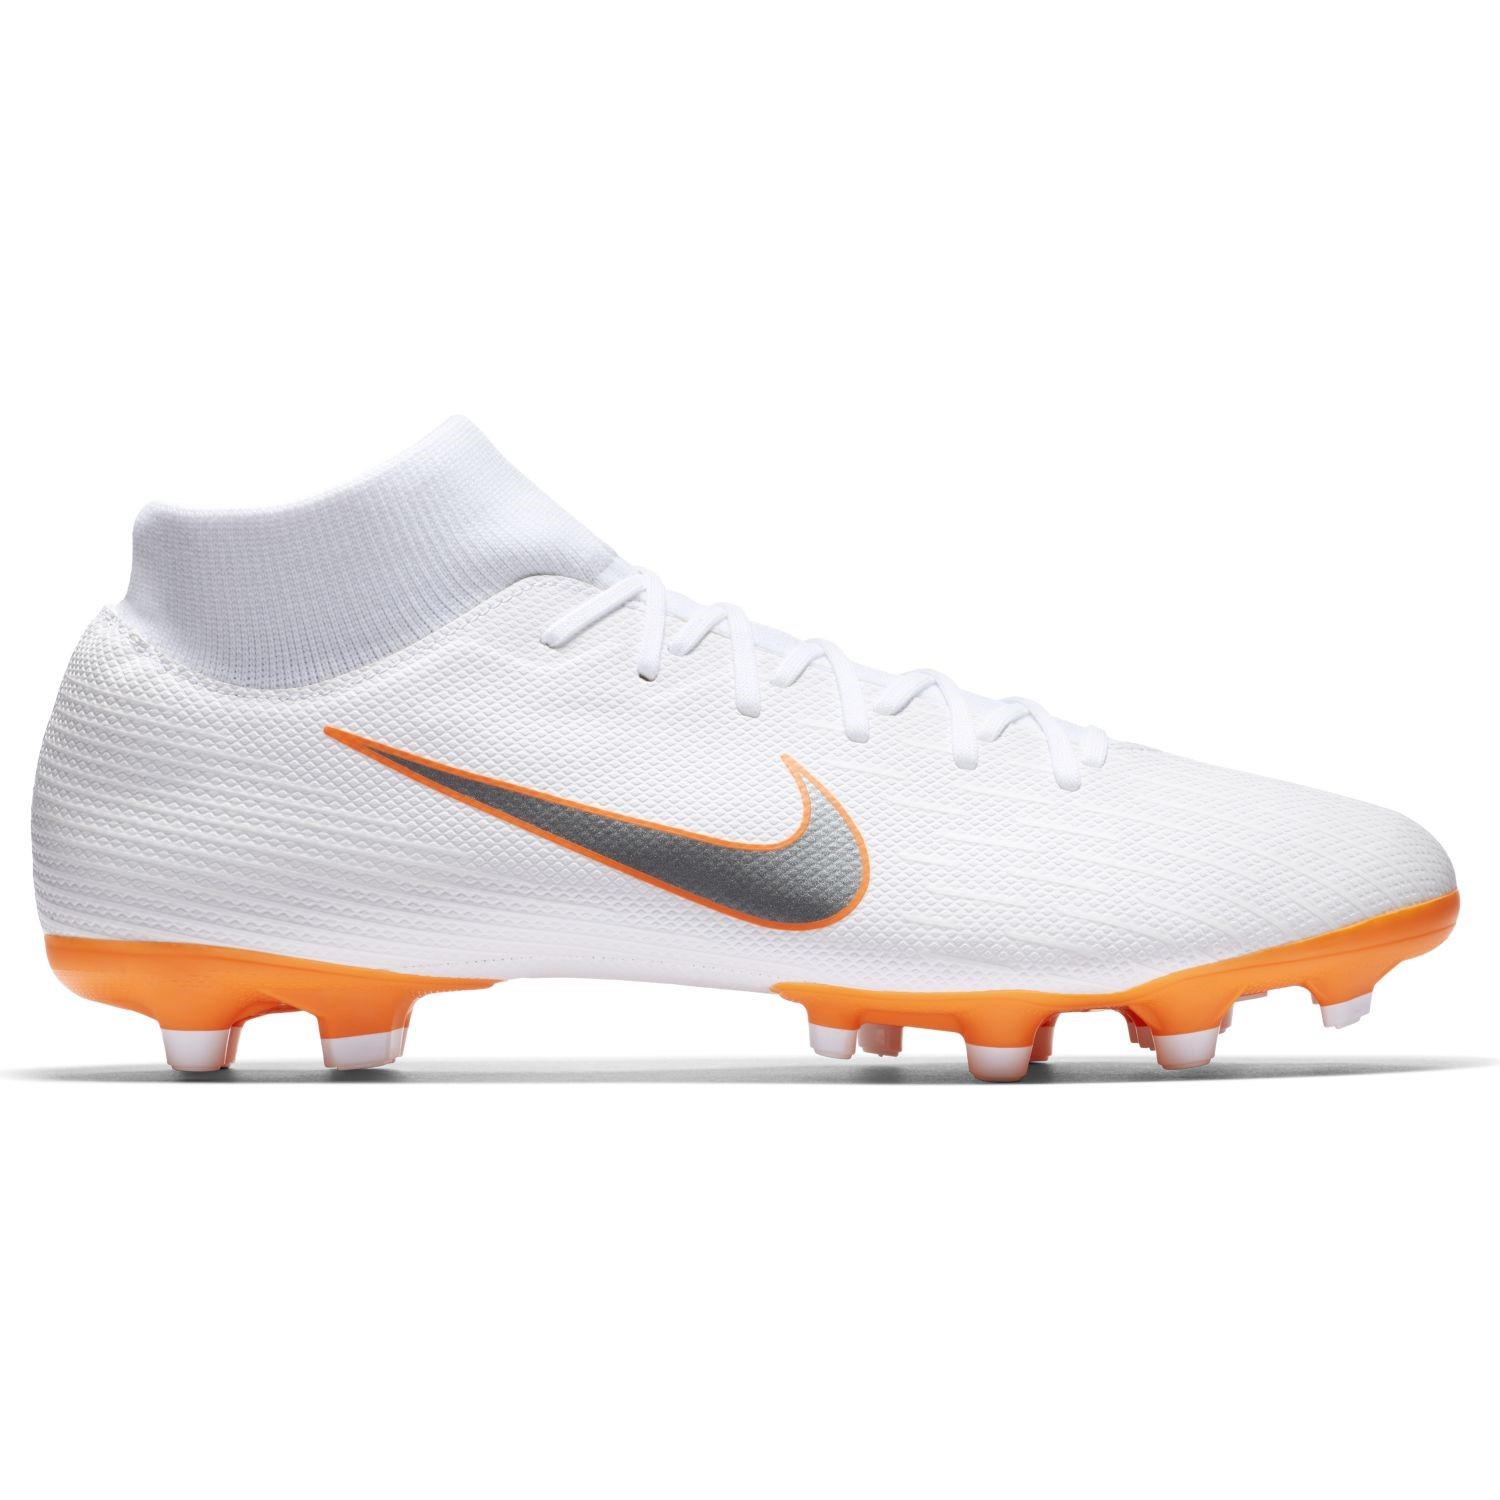 edc715488 Nike Mercurial Superfly VI Academy MG - Mens Football Boots -  White Metallic Cool Grey